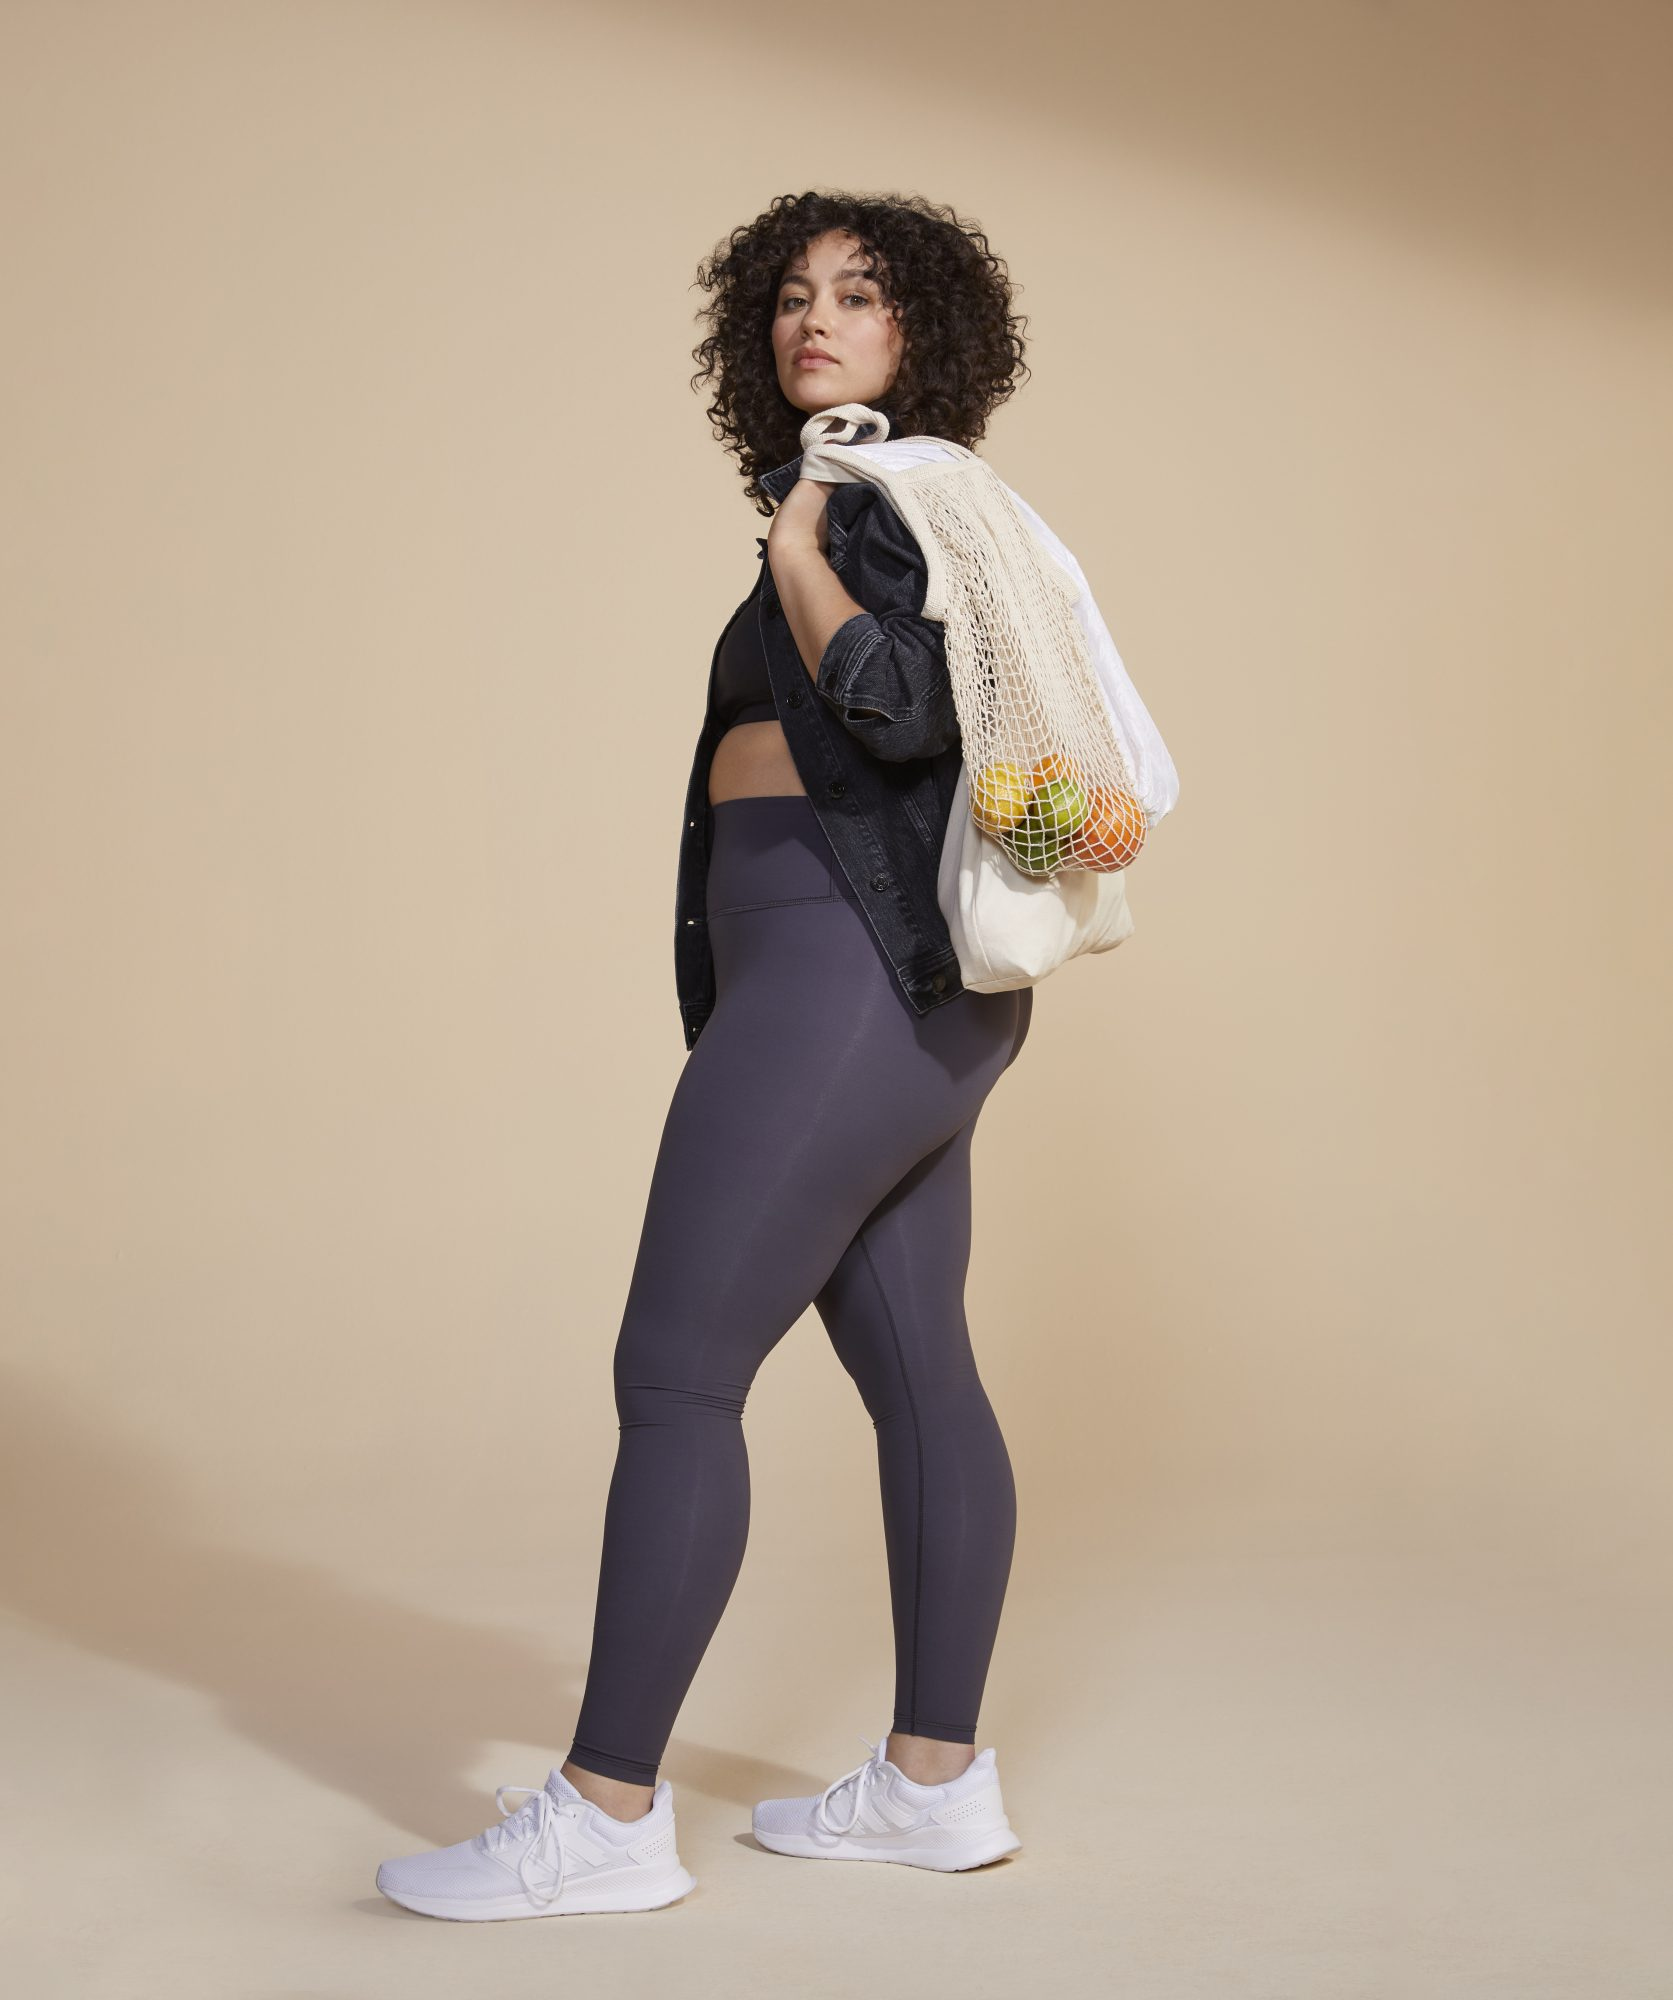 Everlane Just Launched Leggings With a 33,000-Person Waitlist